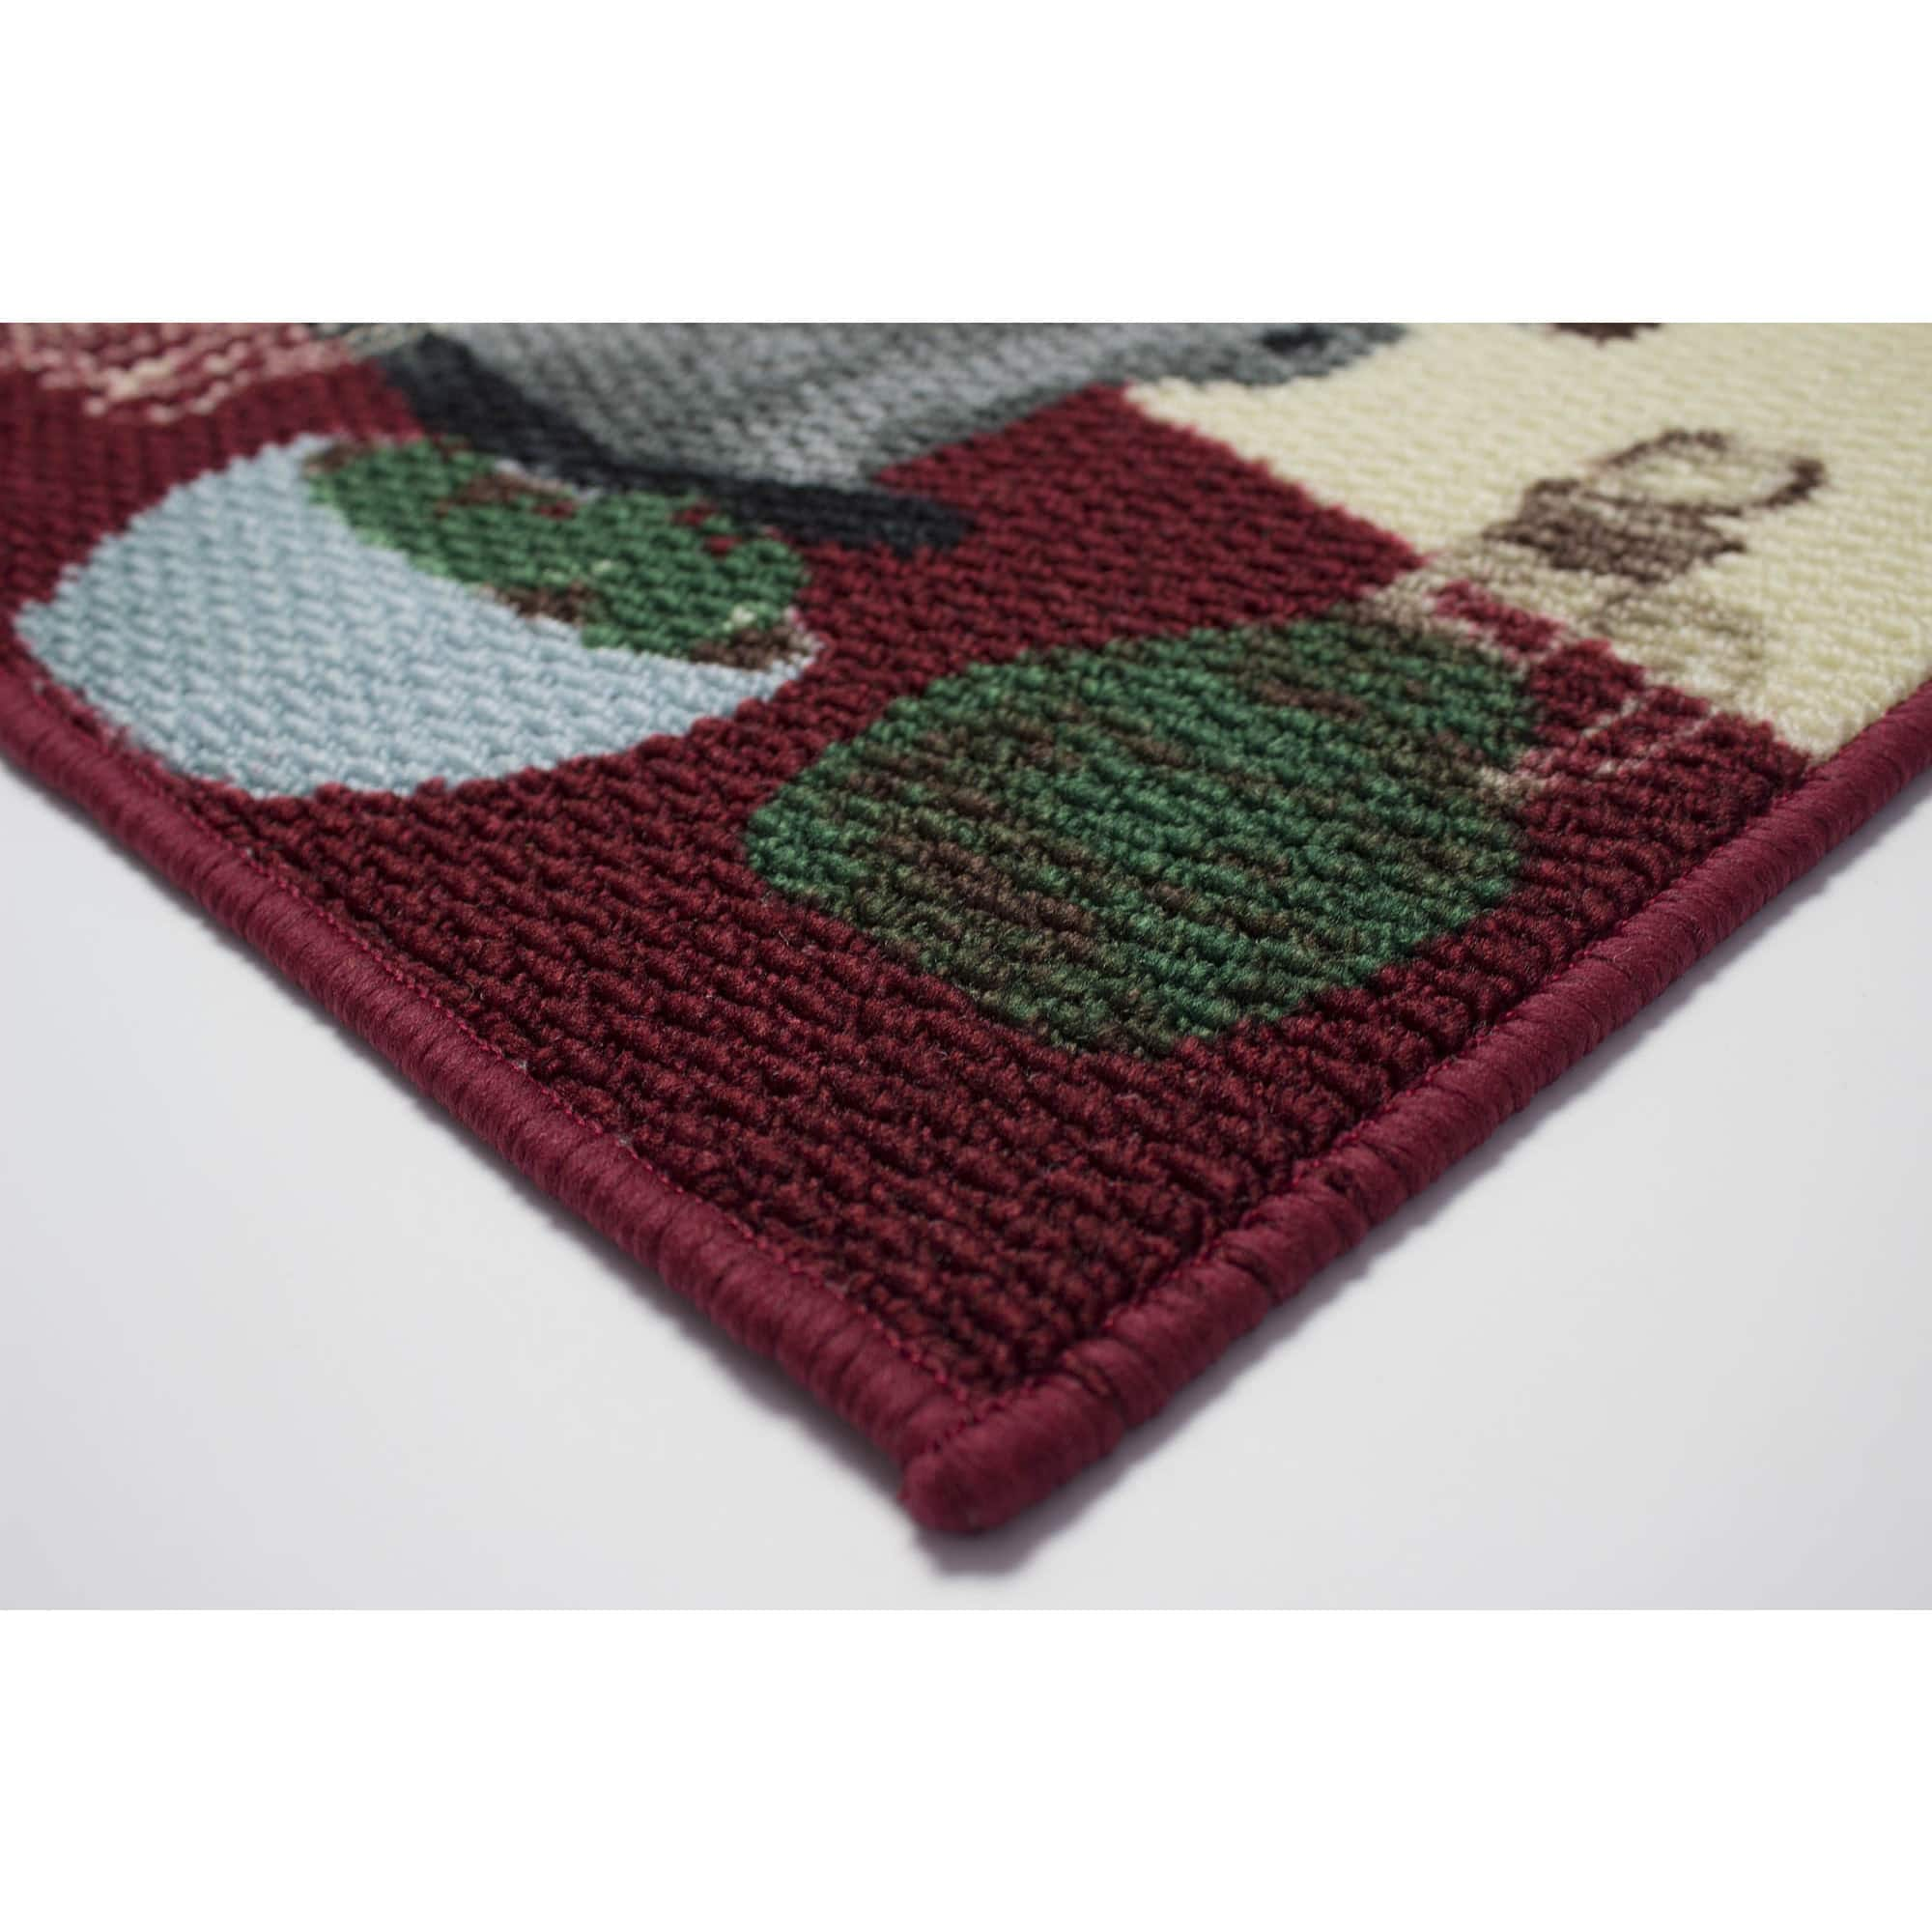 Buy Kitchen Rugs & Mats Online At Overstock